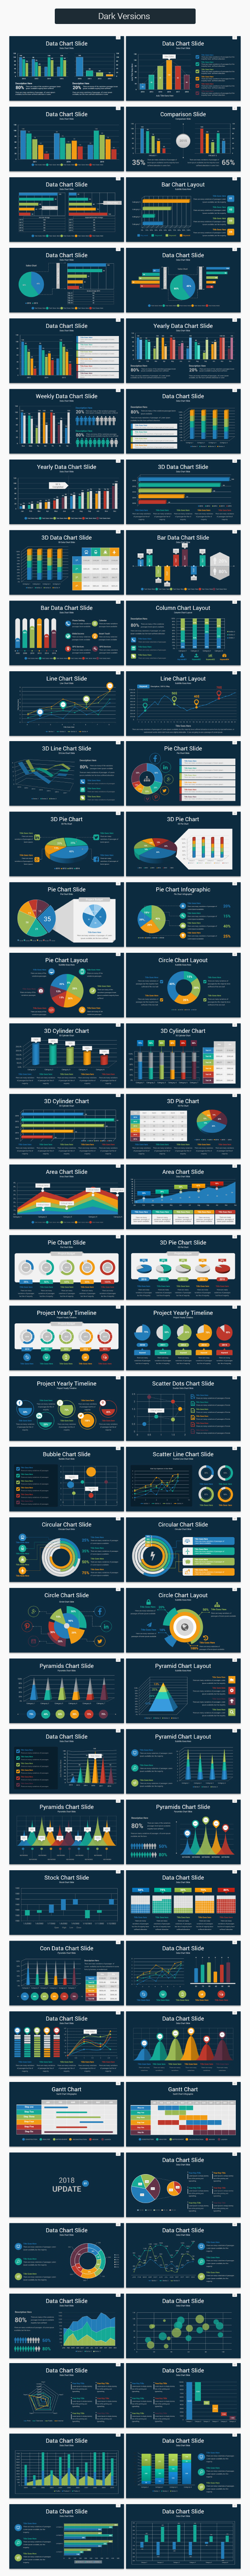 Data Charts Powerpoint Presentation Template By Rojdark Graphicriver Logic Diagram In